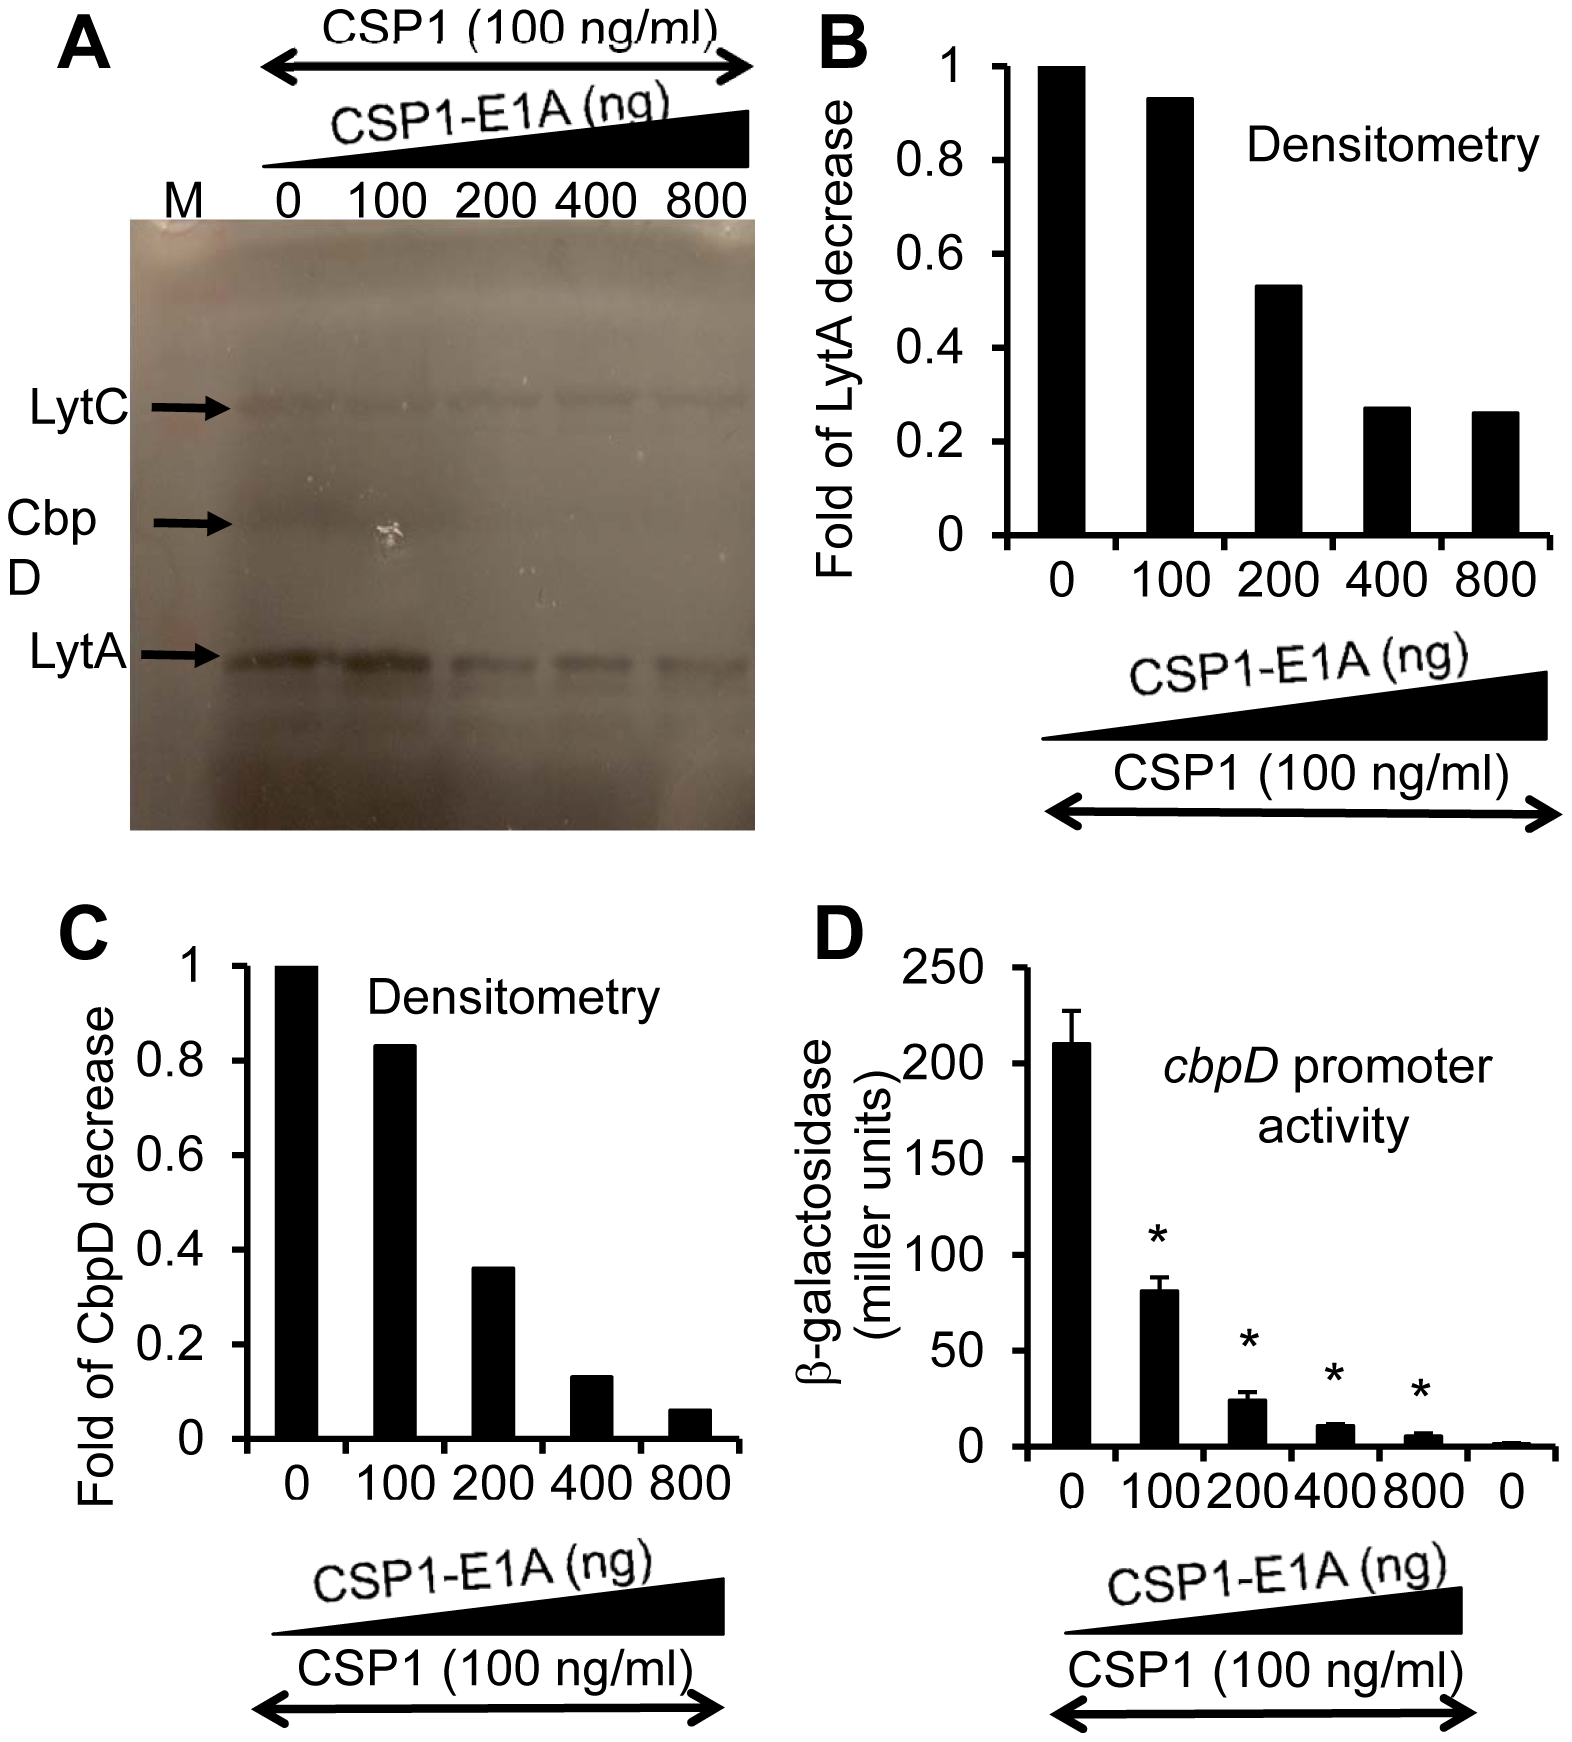 CSP1-E1A inhibits the expression of competence regulated virulence factors LytA and CbpD <i>in vitro</i>.